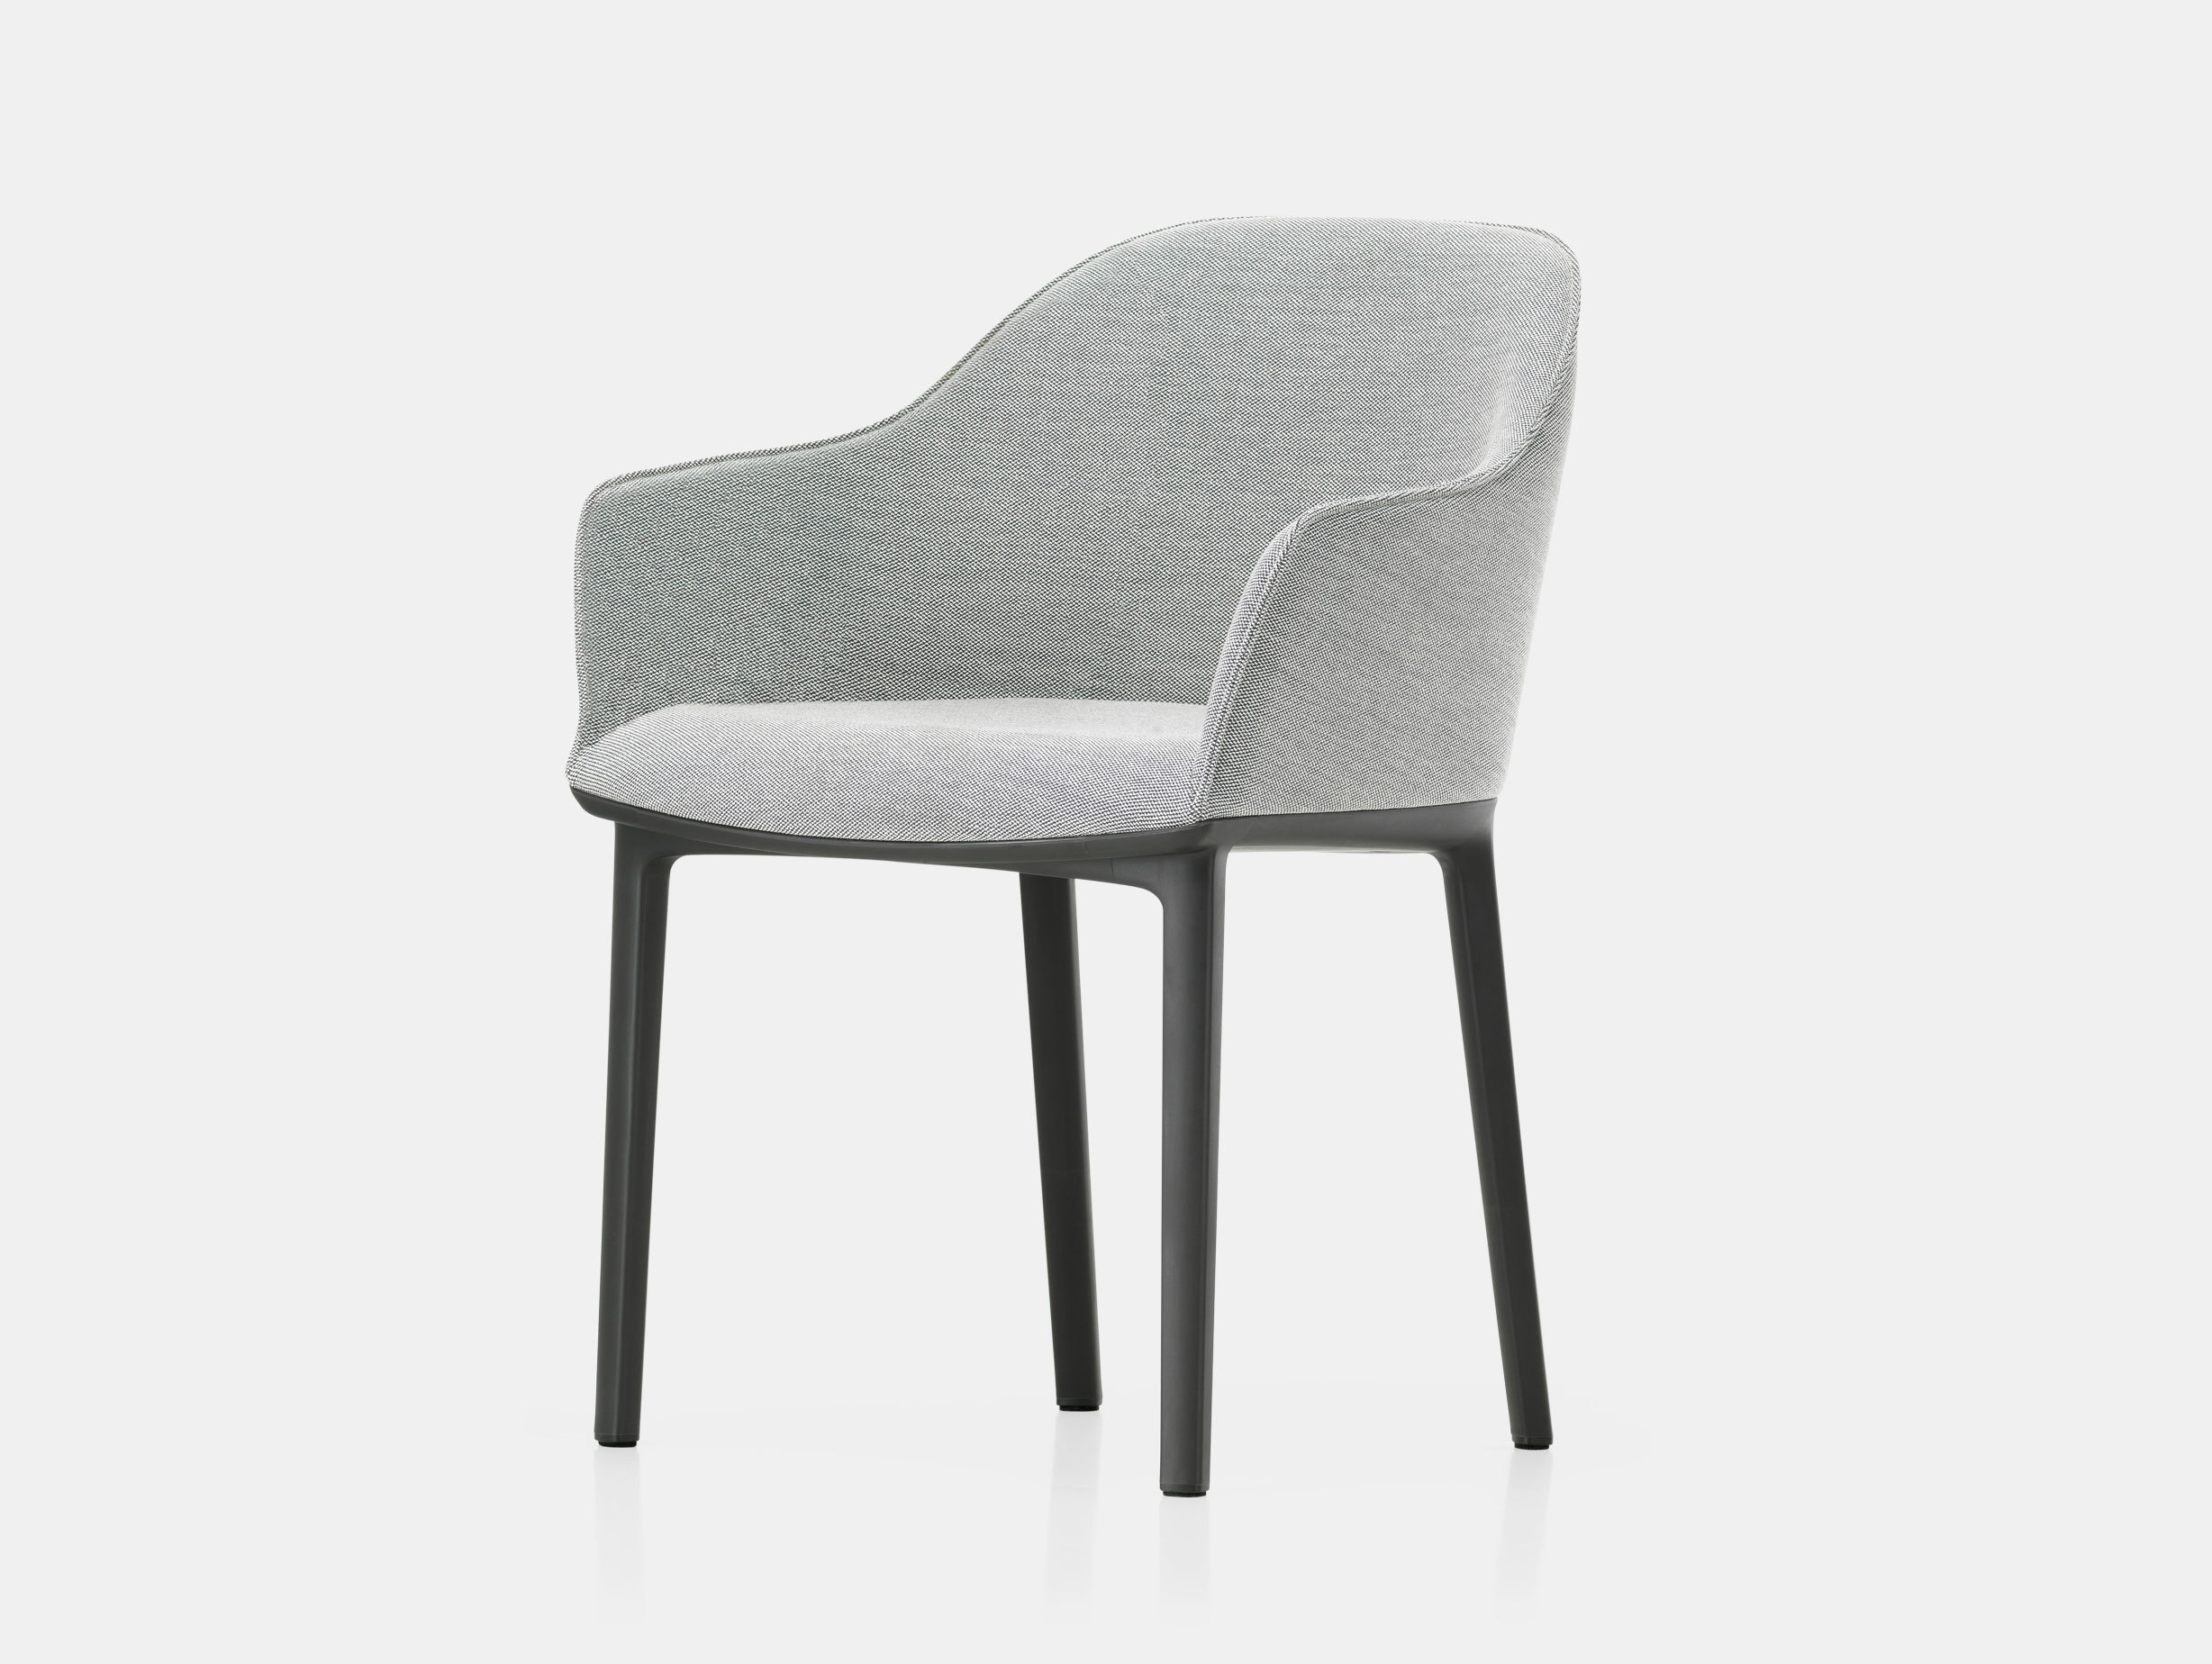 Softshell Chair image 1